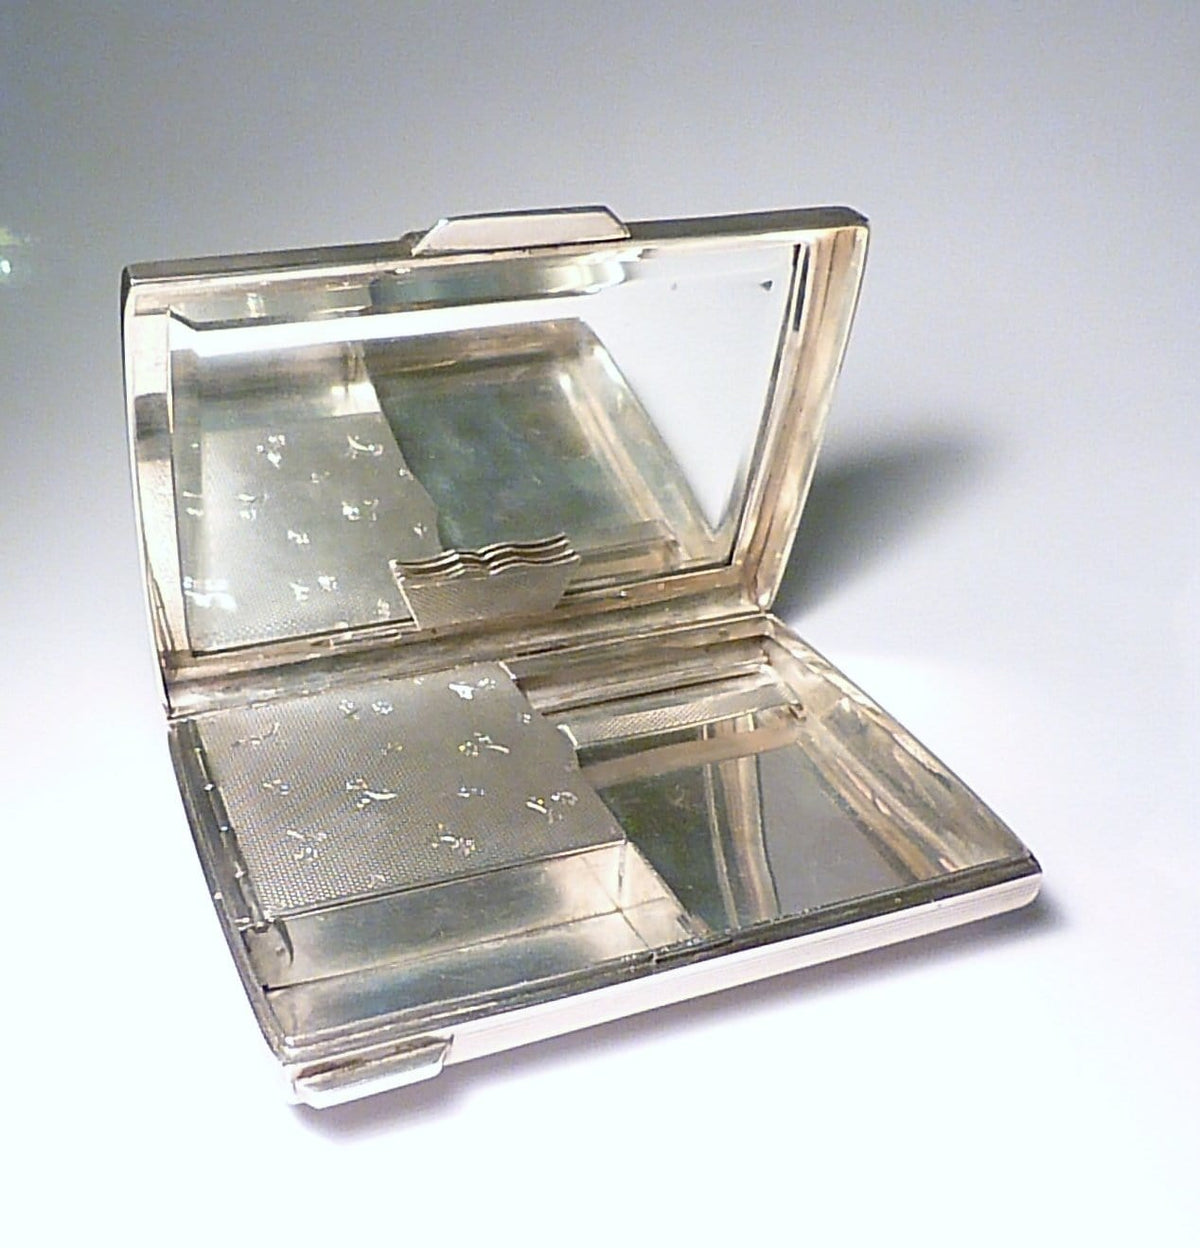 Solid silver minaudiere antique necessaire bridal clutches 1940s